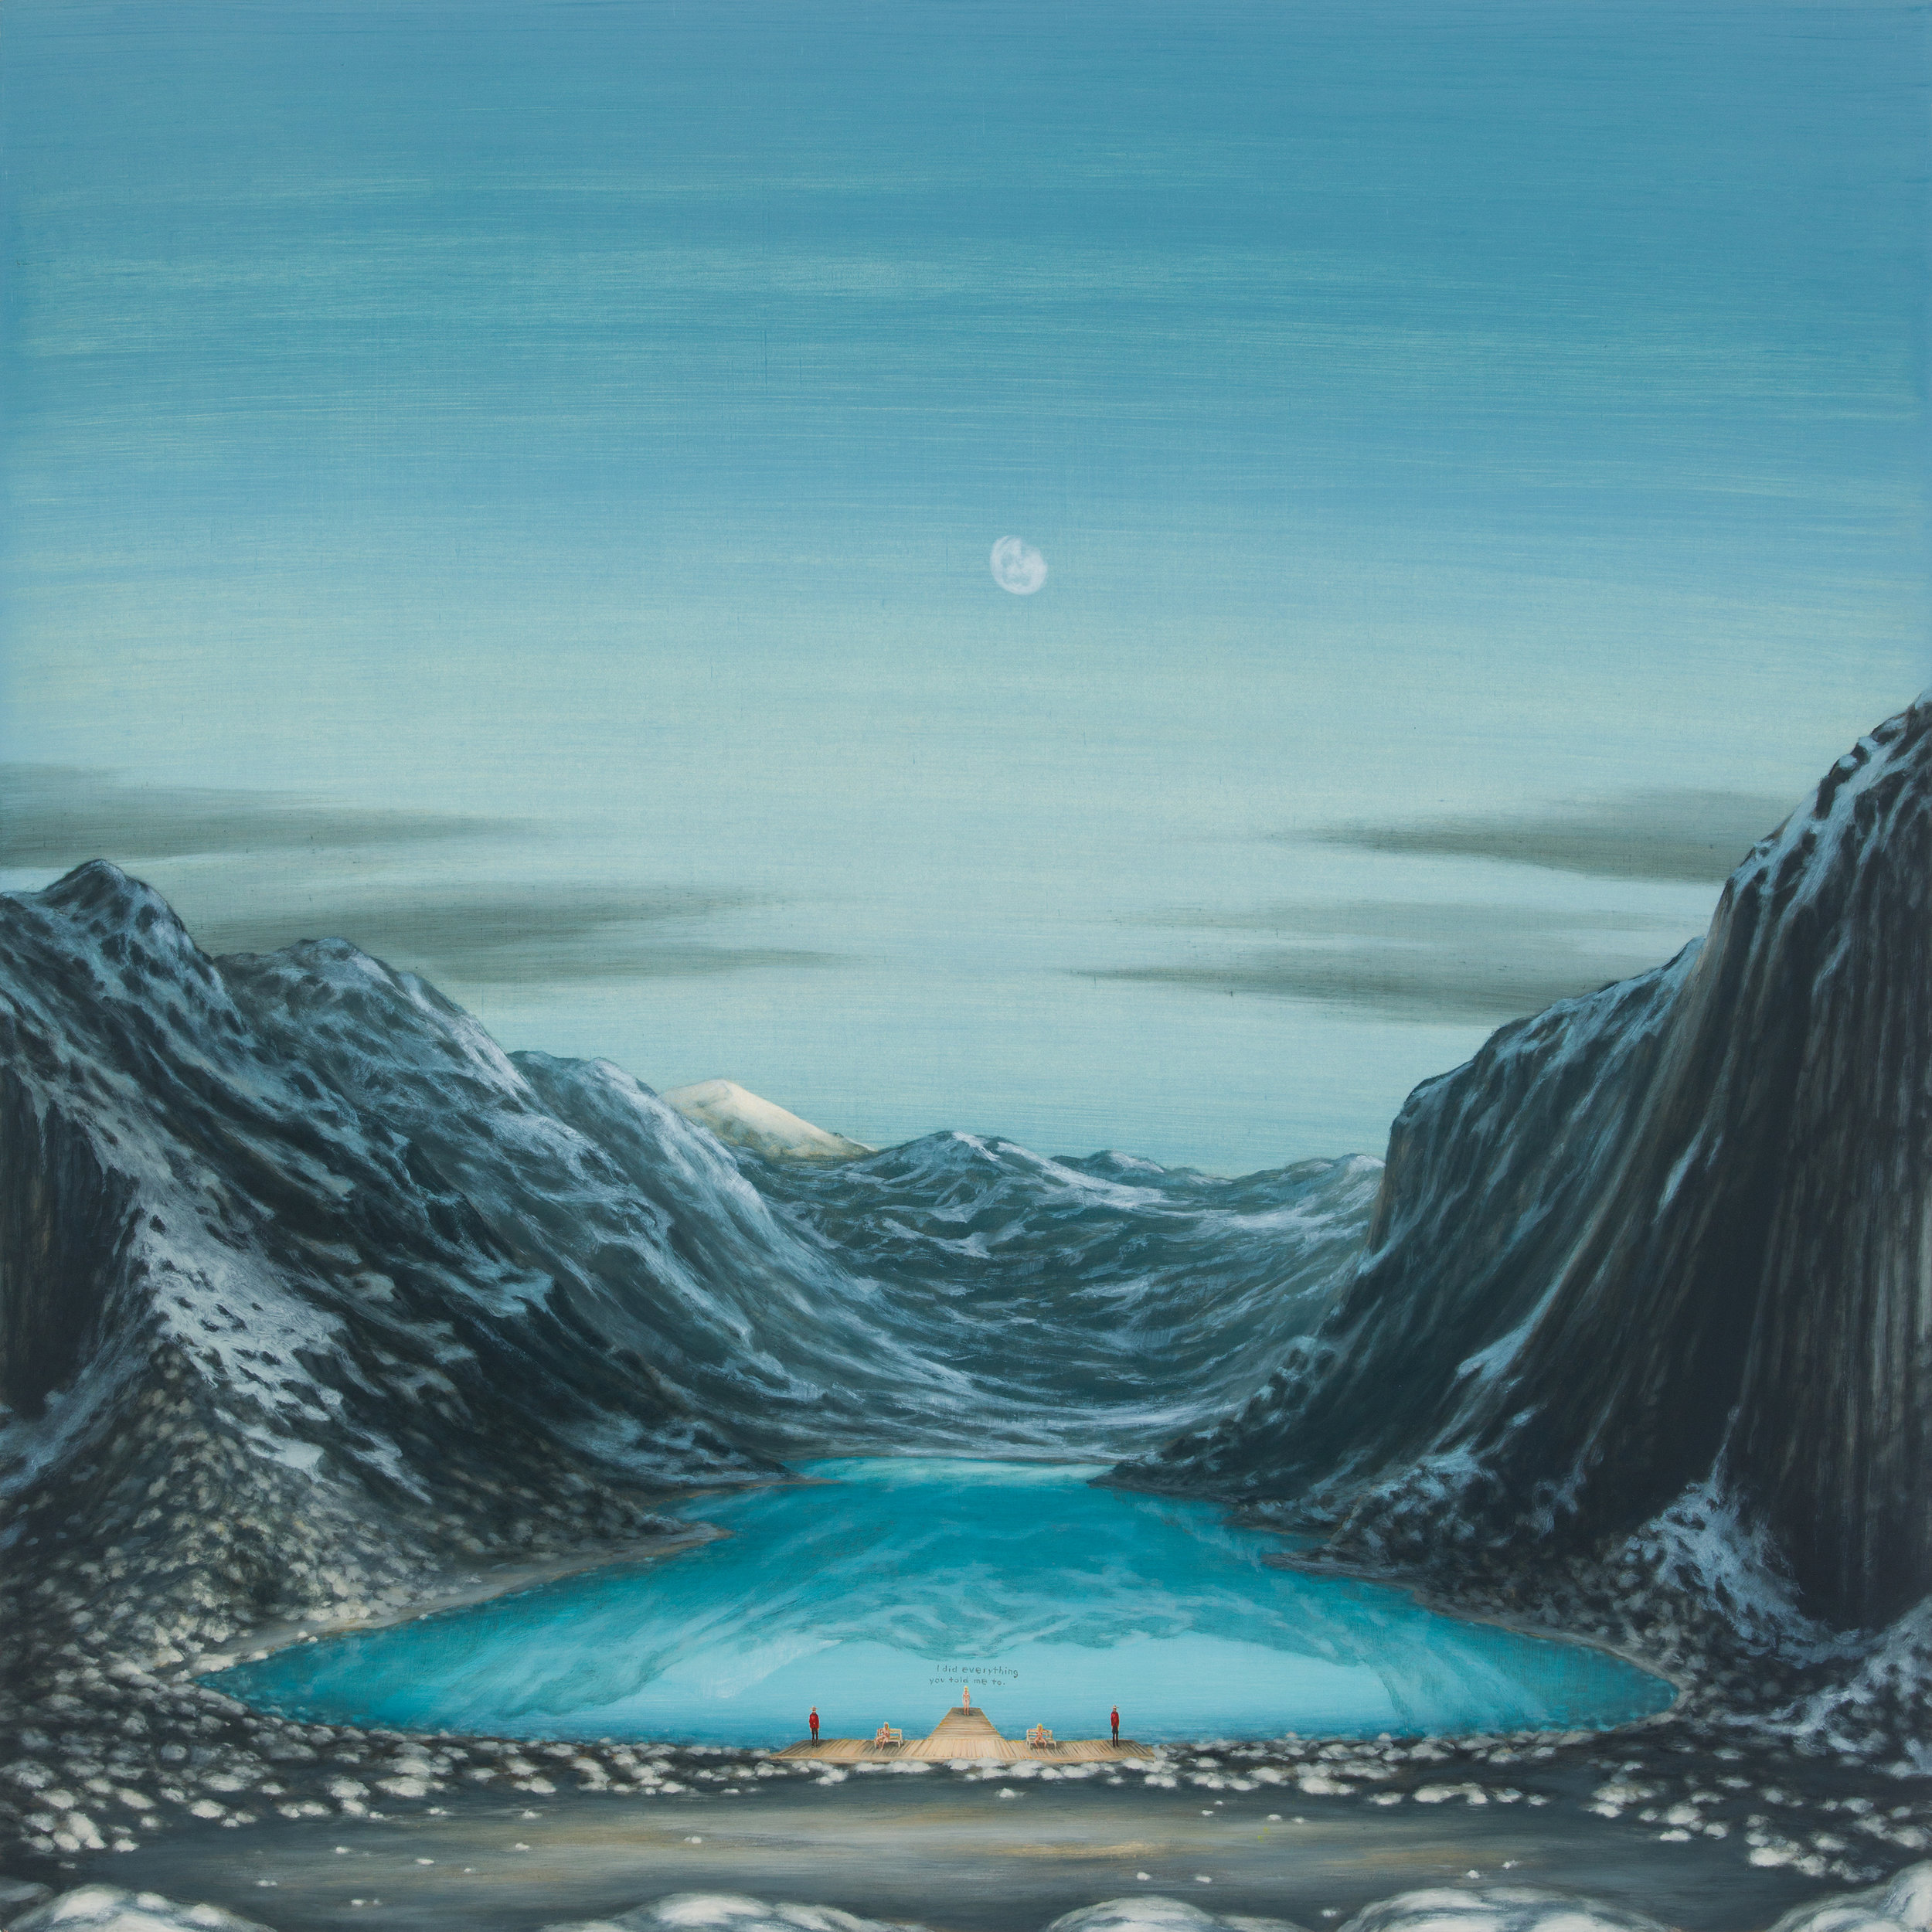 Dan Attoe,  Glacial Lake with Two Blonde Girls 2,  2015, Oil on panel, 24 x 24. Courtesy of the artist and Western Exhibitions.